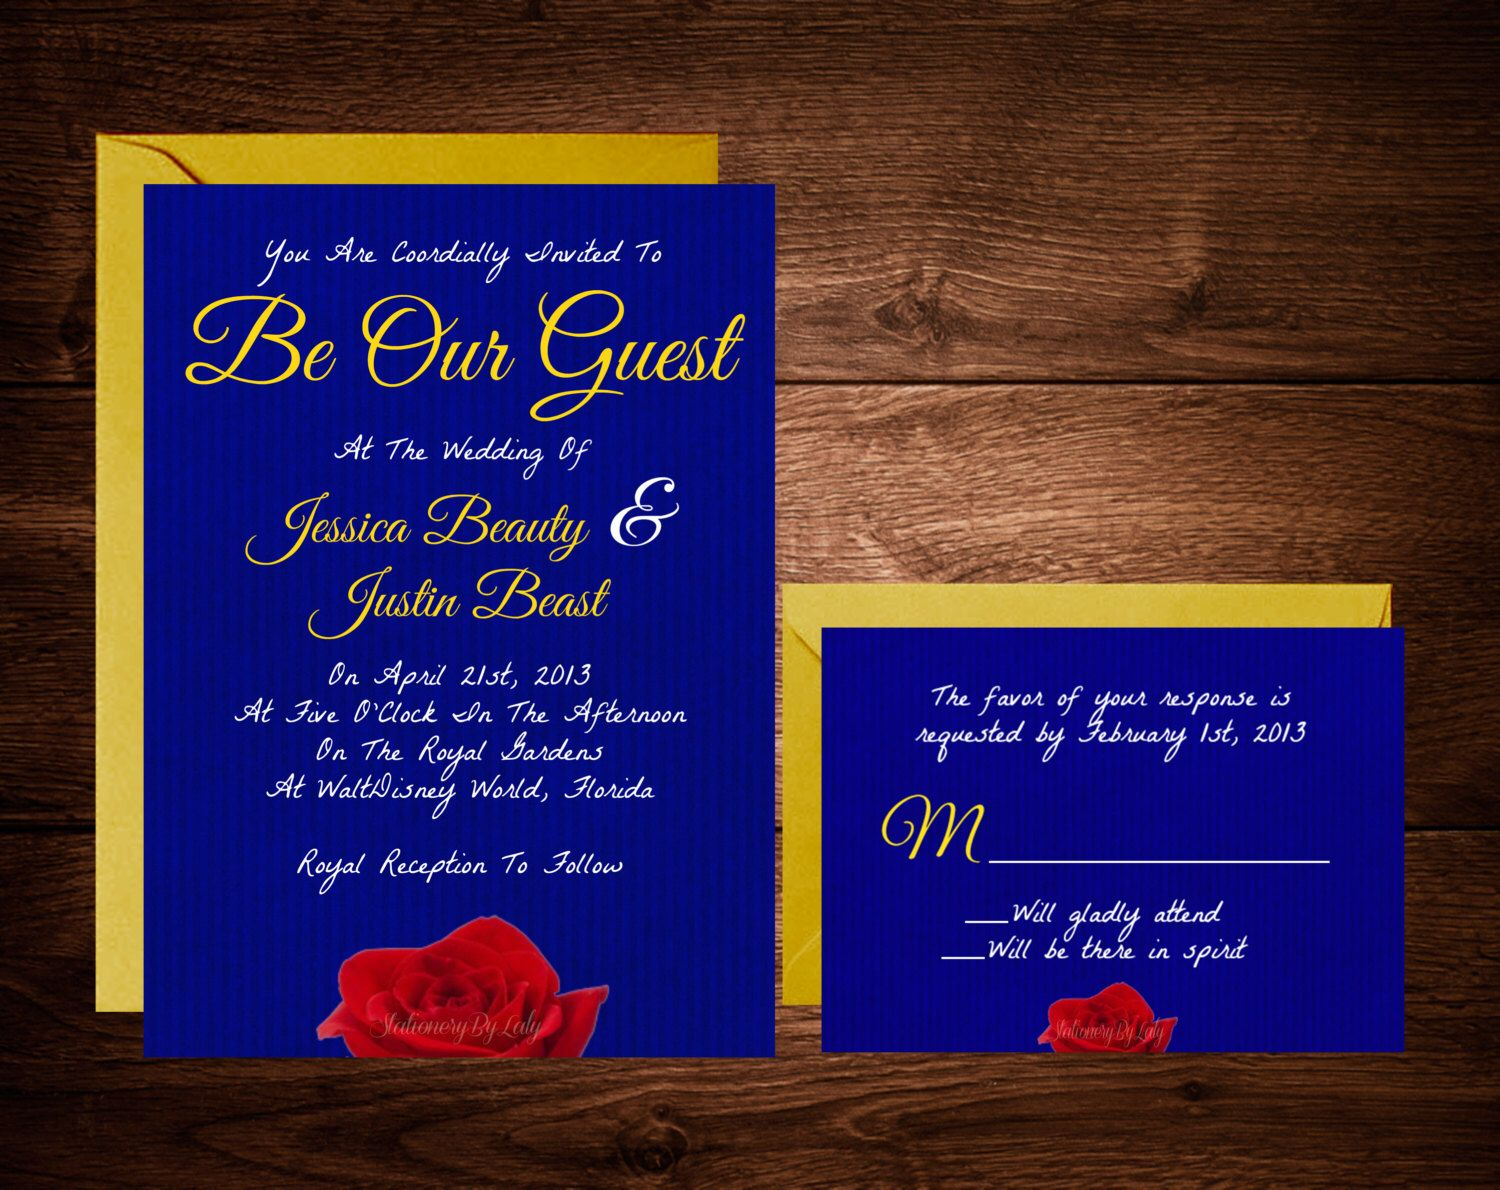 beauty and the beast wedding invitations fairytale With beauty and the beast wedding invitations wording